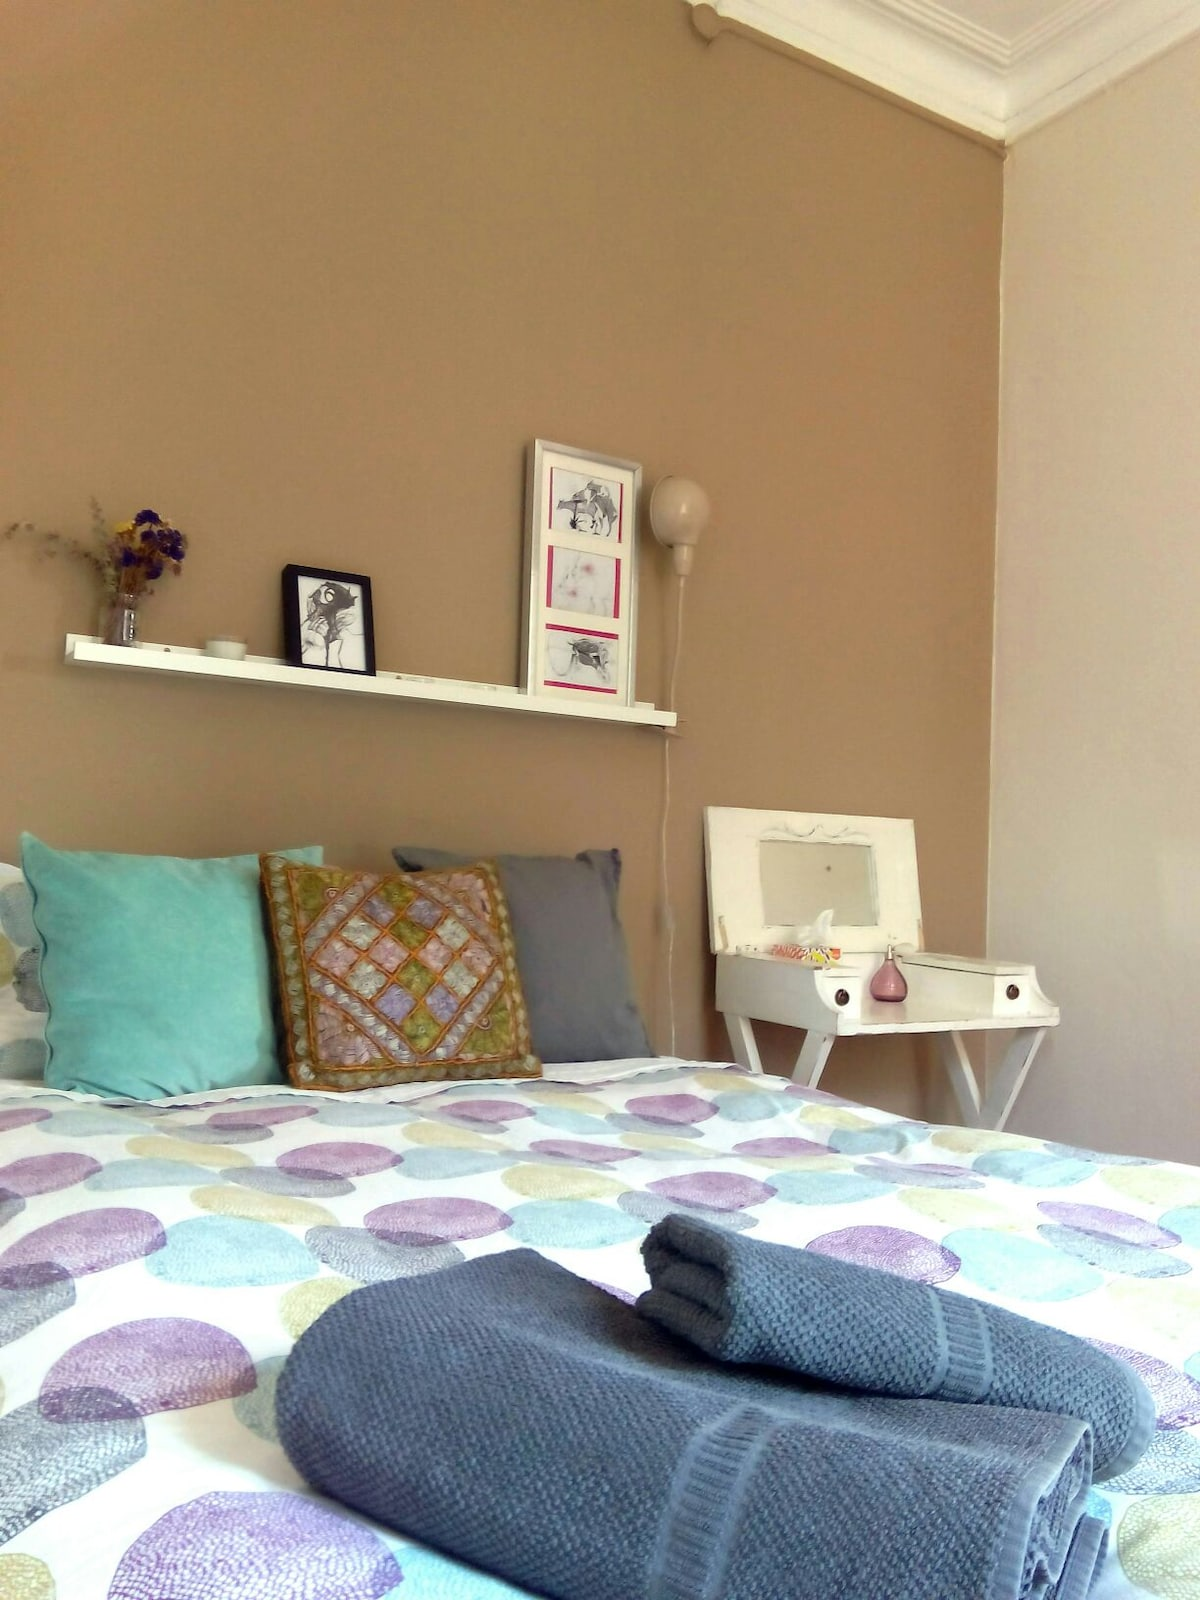 New color wall painted. Full of details: Vintage night table, indian cuchuon, flowers...